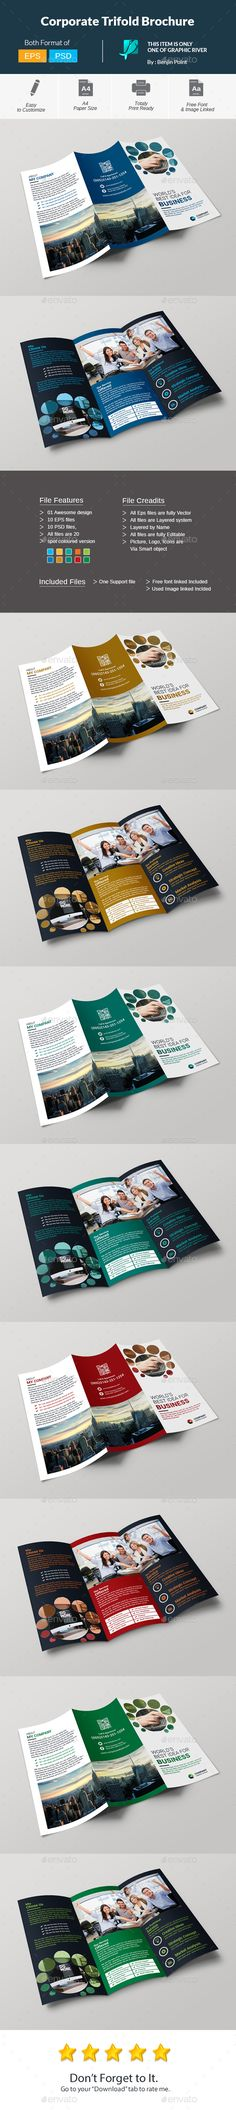 Corporate Trifold Brochure - Corporate Brochures Download here : https://graphicriver.net/item/corporate-trifold-brochure/19673728?s_rank=55&ref=Al-fatih